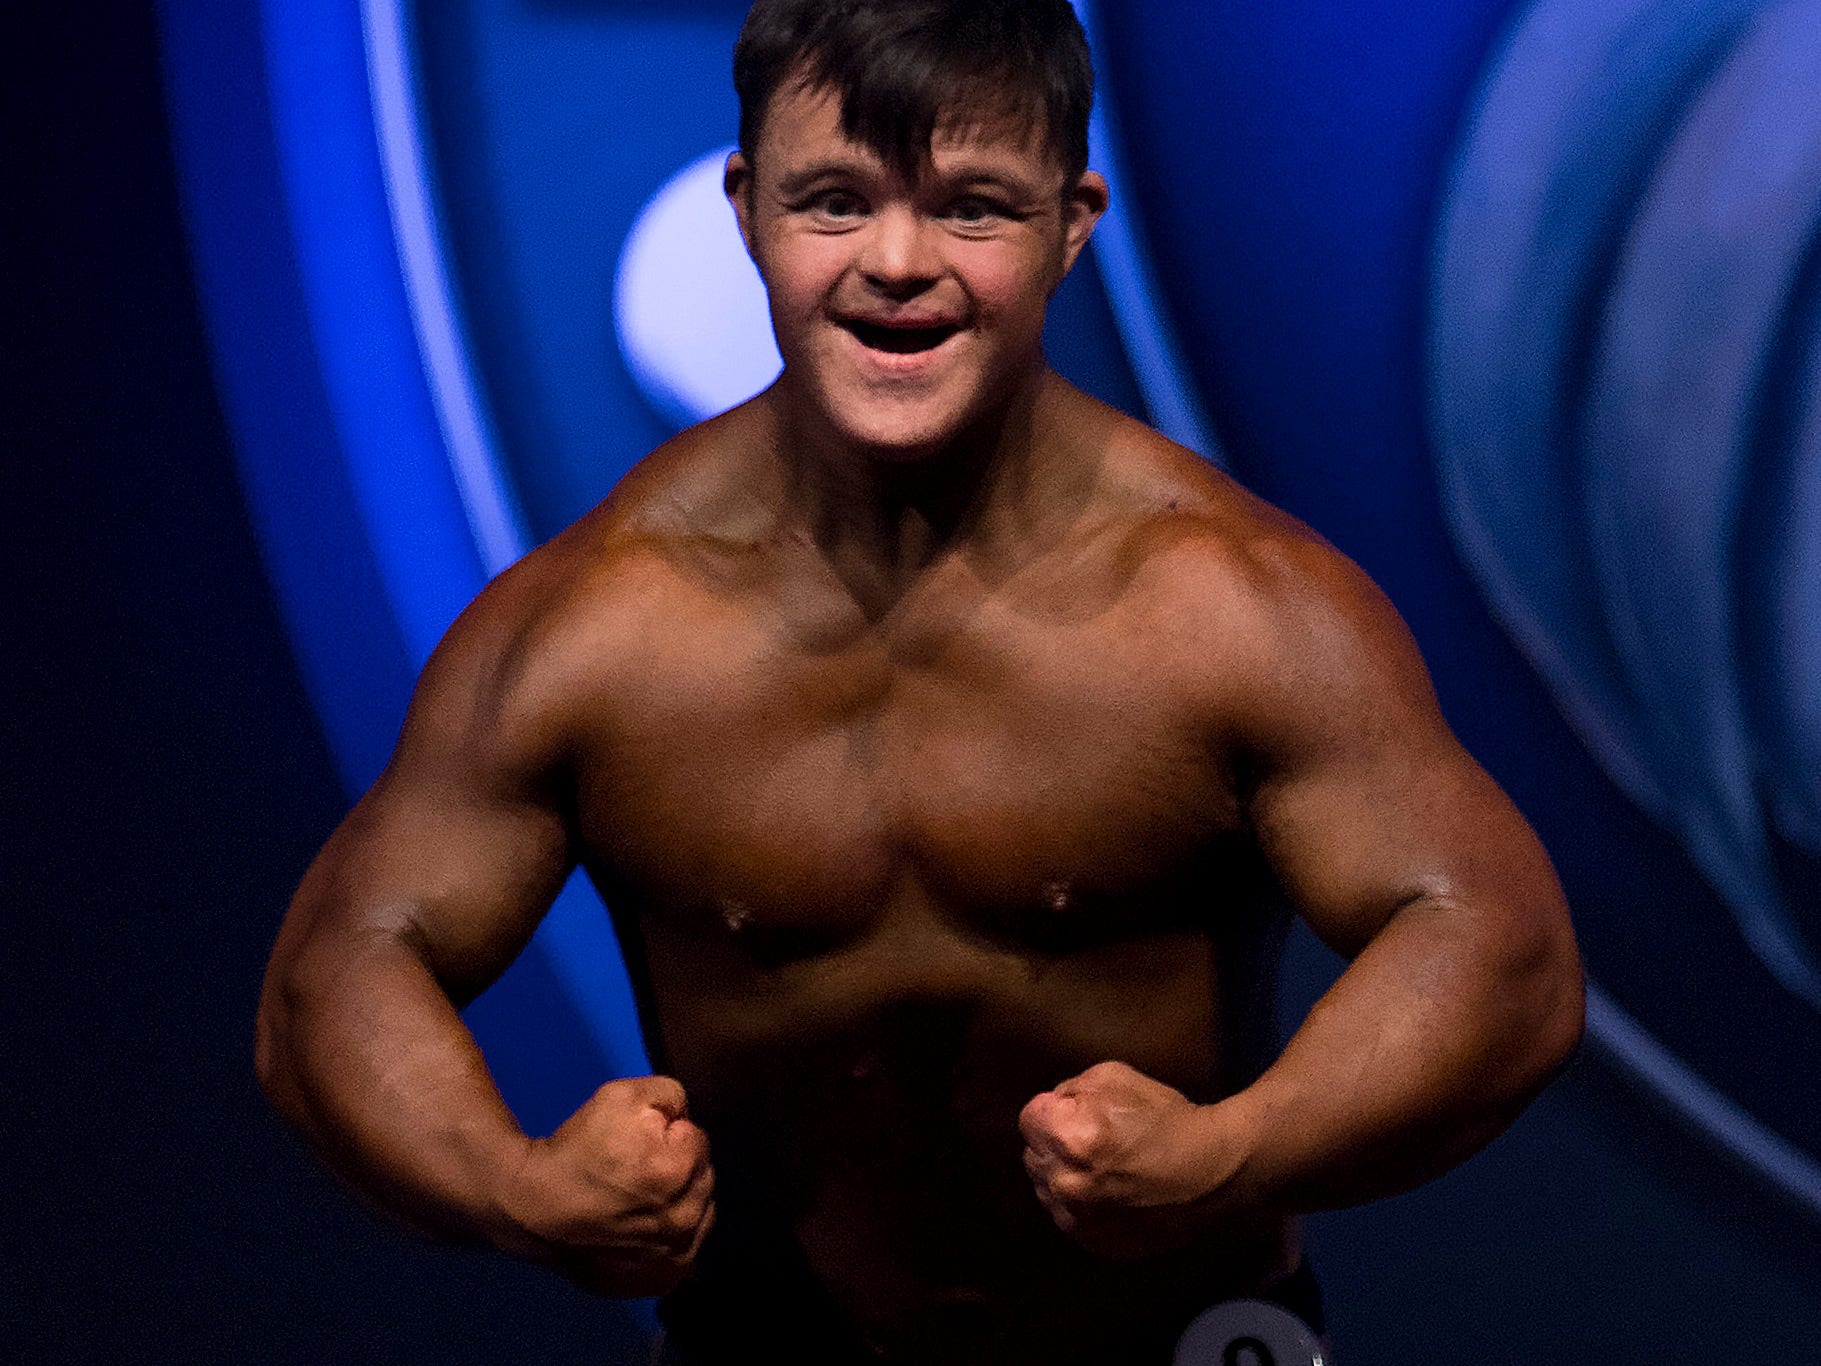 Collin Clarke of Evansville, Ind., competes in Kentucky Muscle's novice bodybuilding lightweight competition at the Kentucky International Convention Center in Louisville, Ky., Oct. 20, 2018. Clarke took second place in the competition and is already back at the gym getting ready for Indiana Muscle in March of 2019.